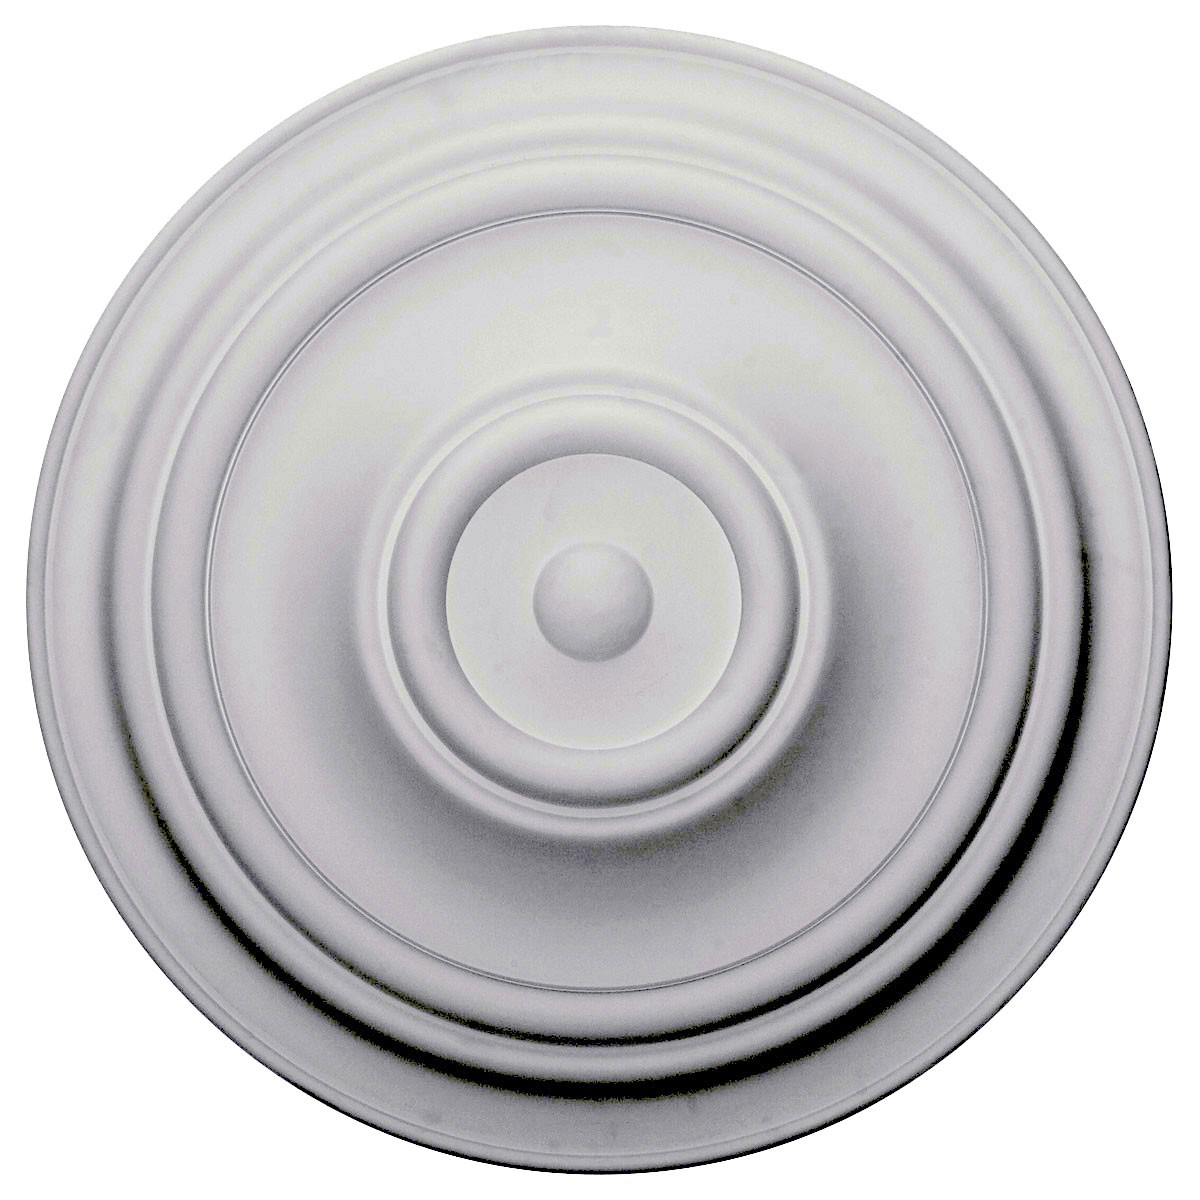 """EM-CM31TR - 31 1/2""""OD x 2 1/2""""P Traditional Ceiling Medallion (Fits Canopies up to 8 1/4"""")"""